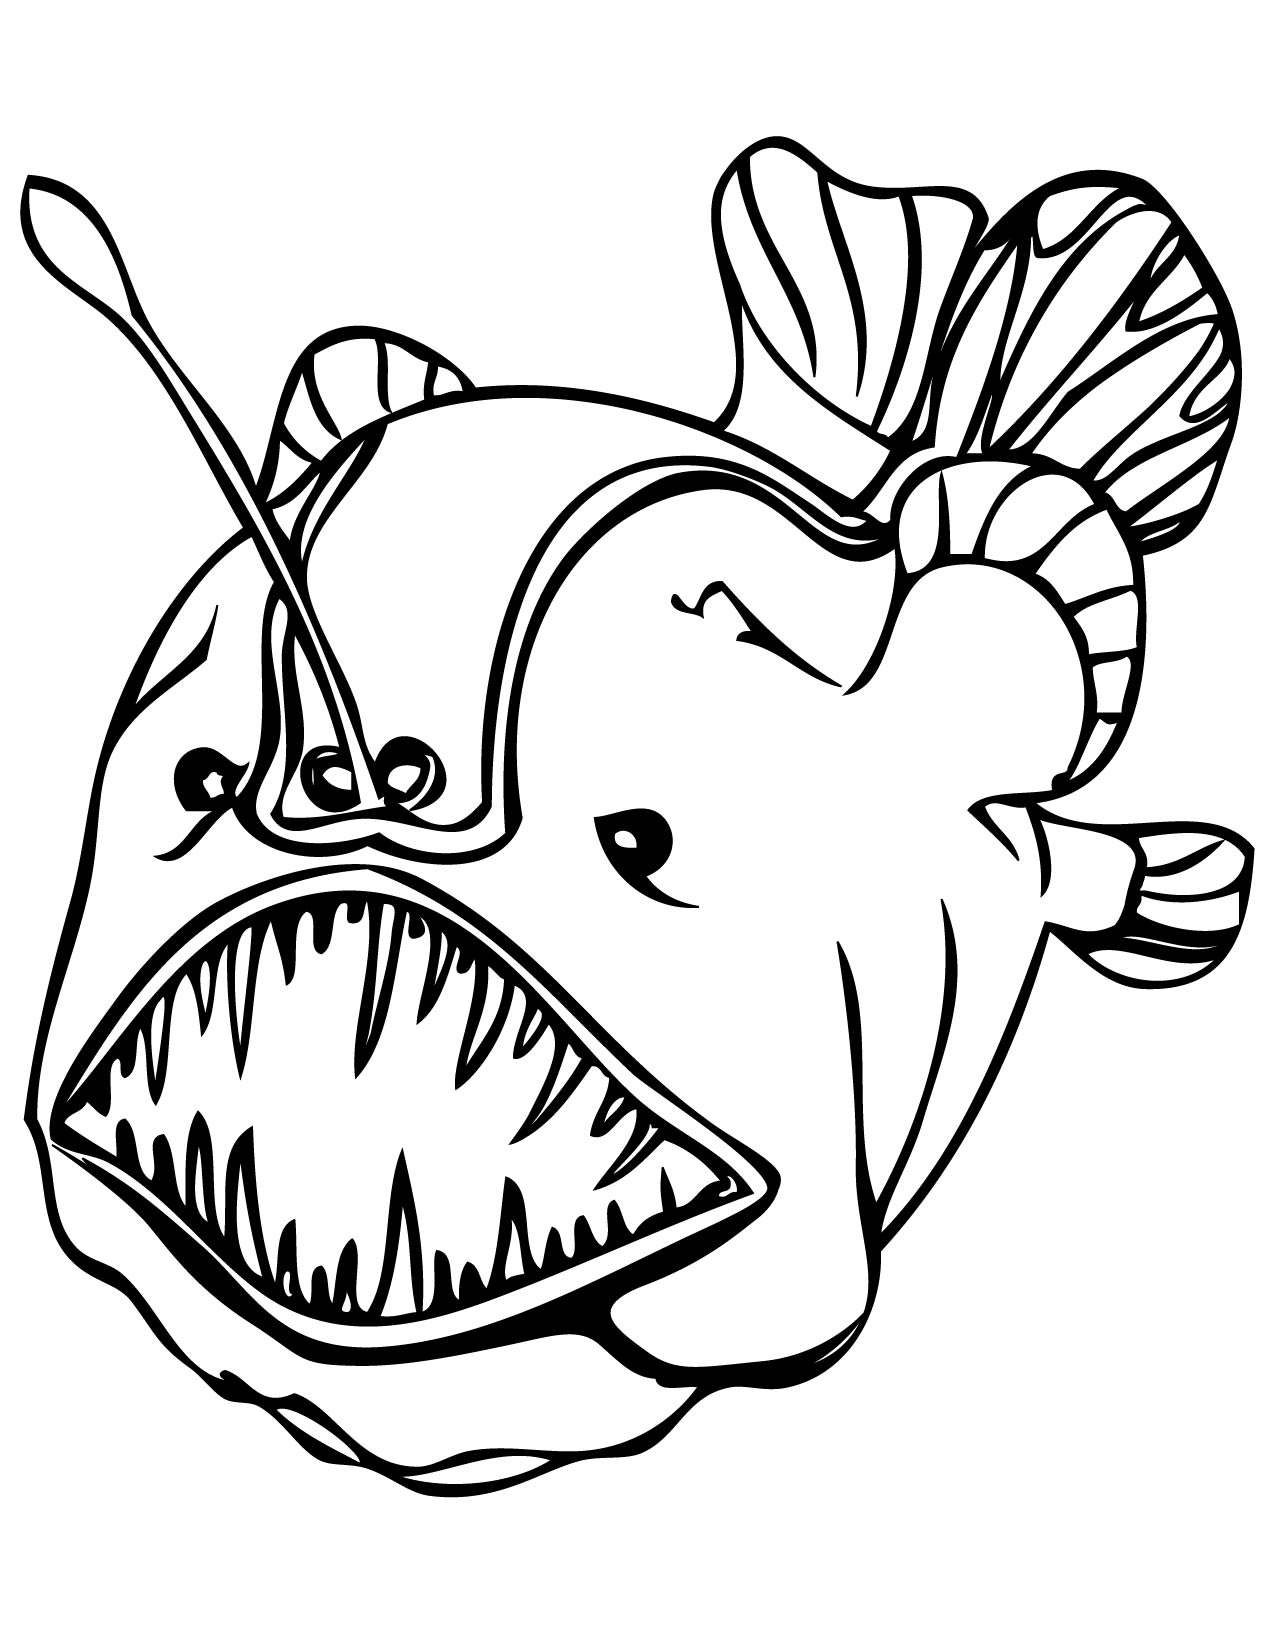 sea life animals coloring pages sea animal coloring pages to download and print for free pages animals sea coloring life